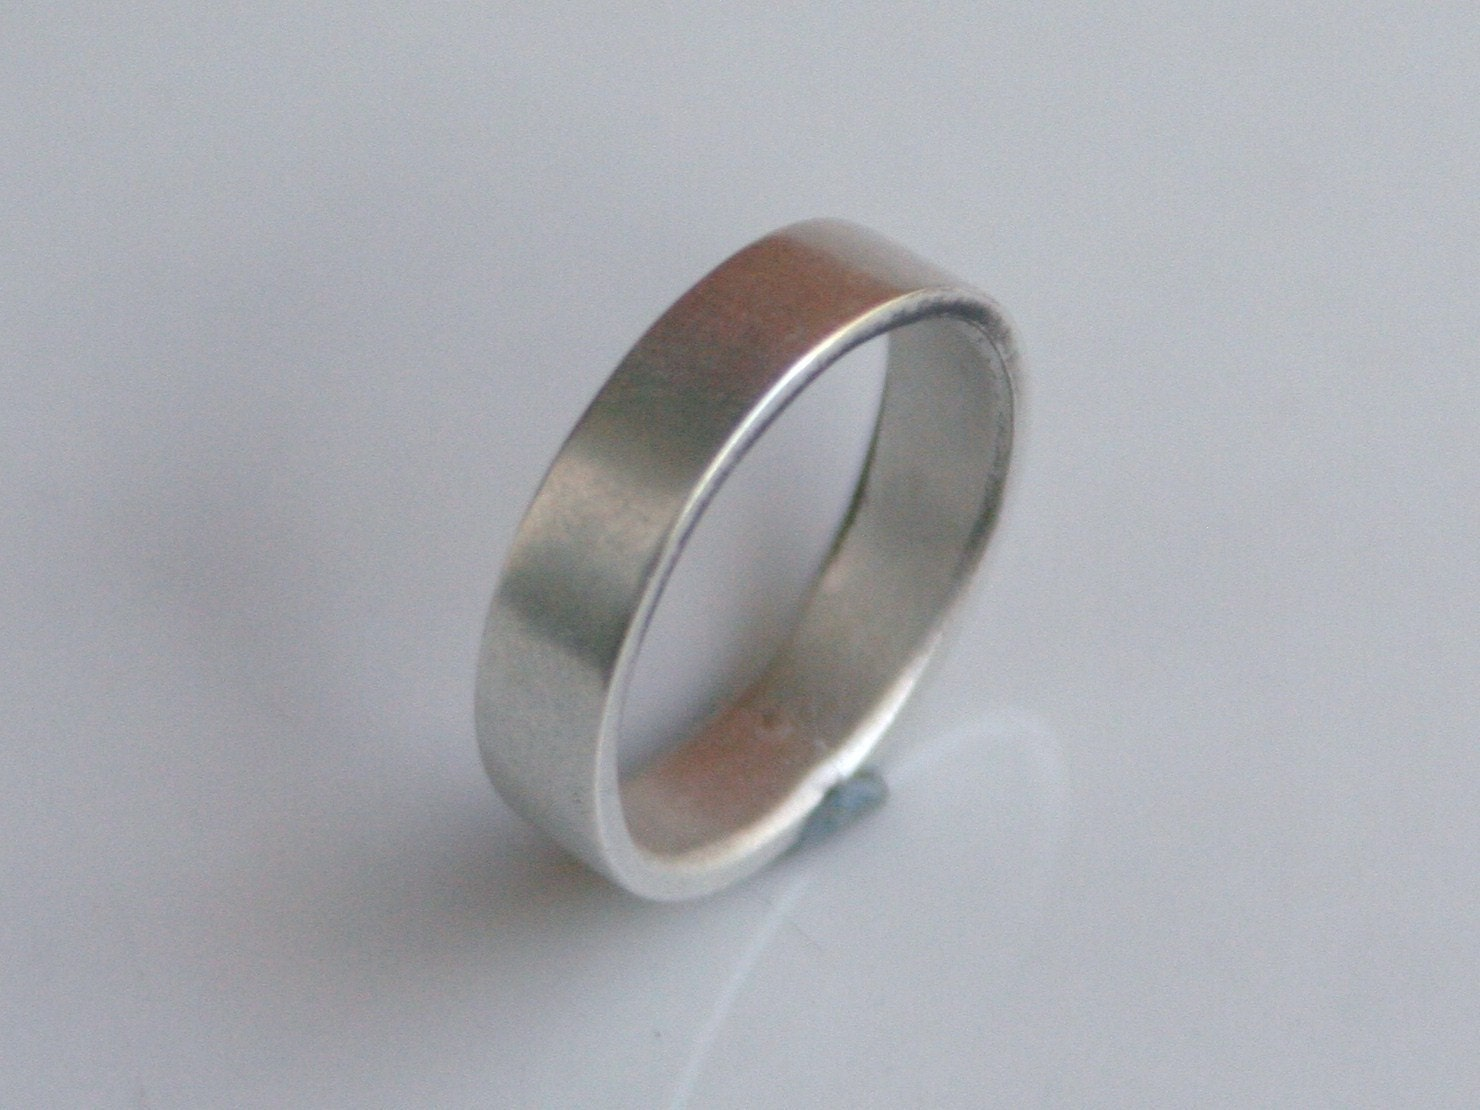 brushed silver ring or wedding band s by beatrizfortes